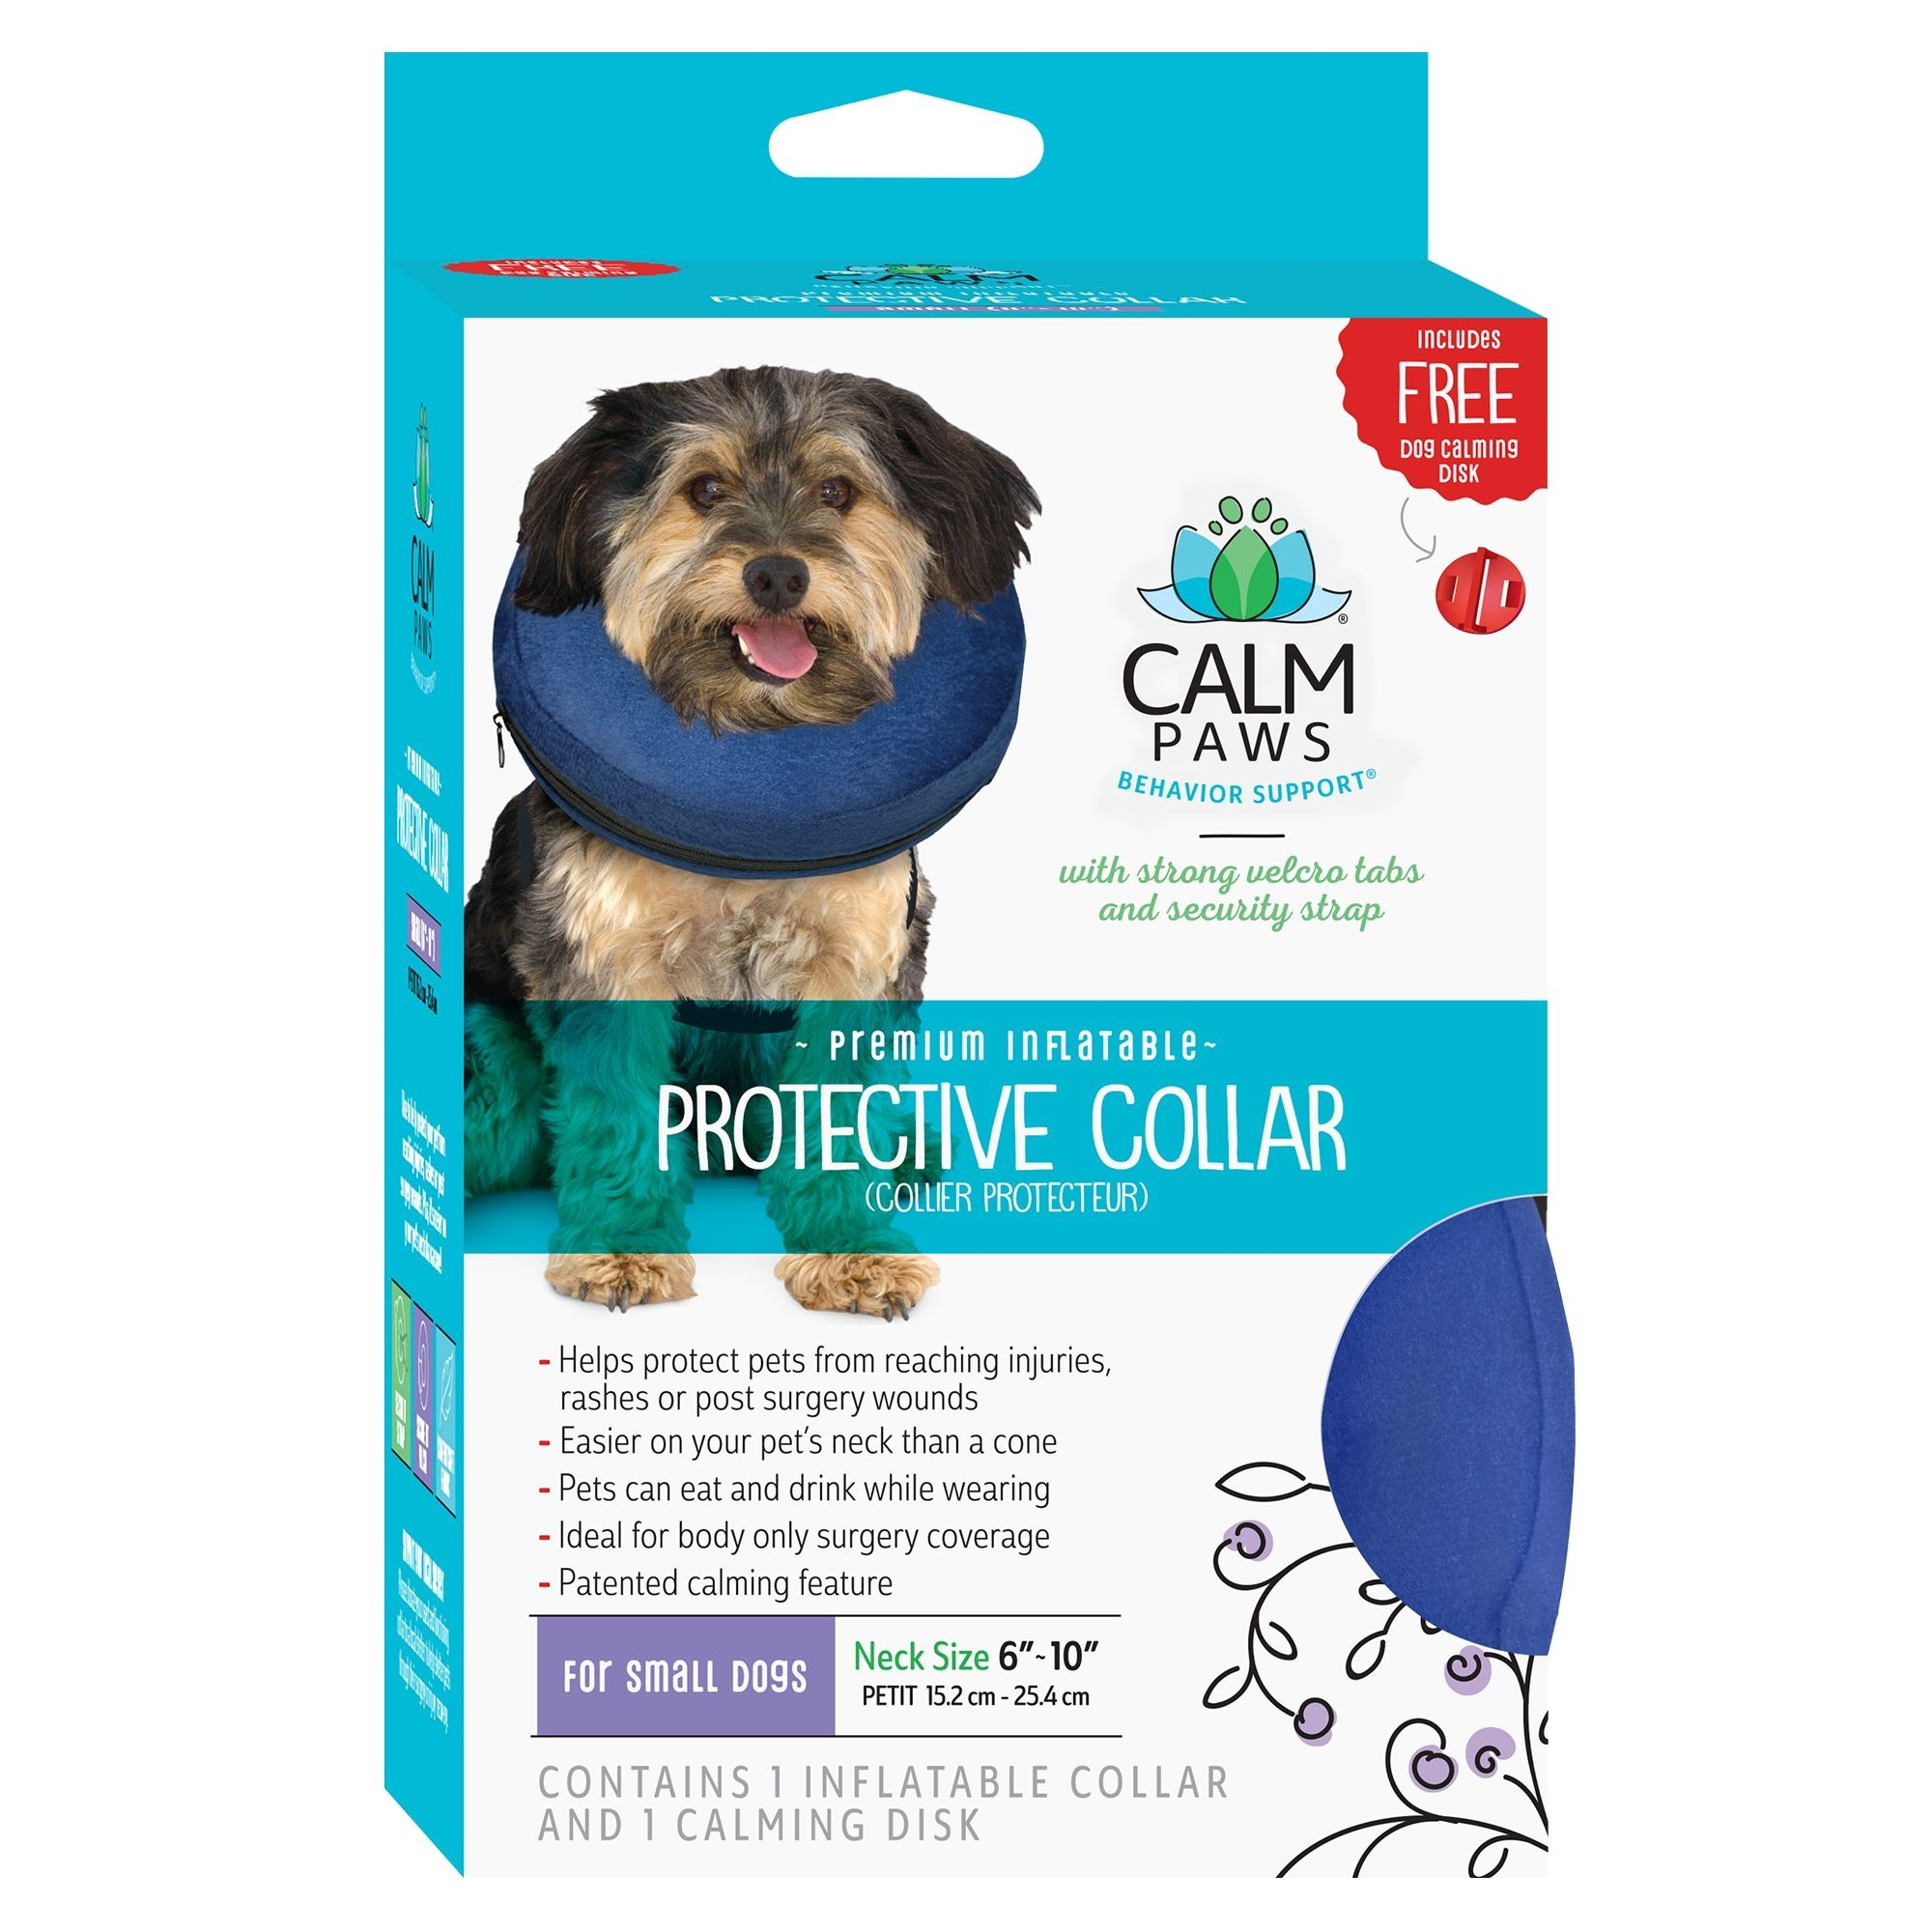 21st Centry Animal Health Care Calm Paws Inflatable Protective Collar